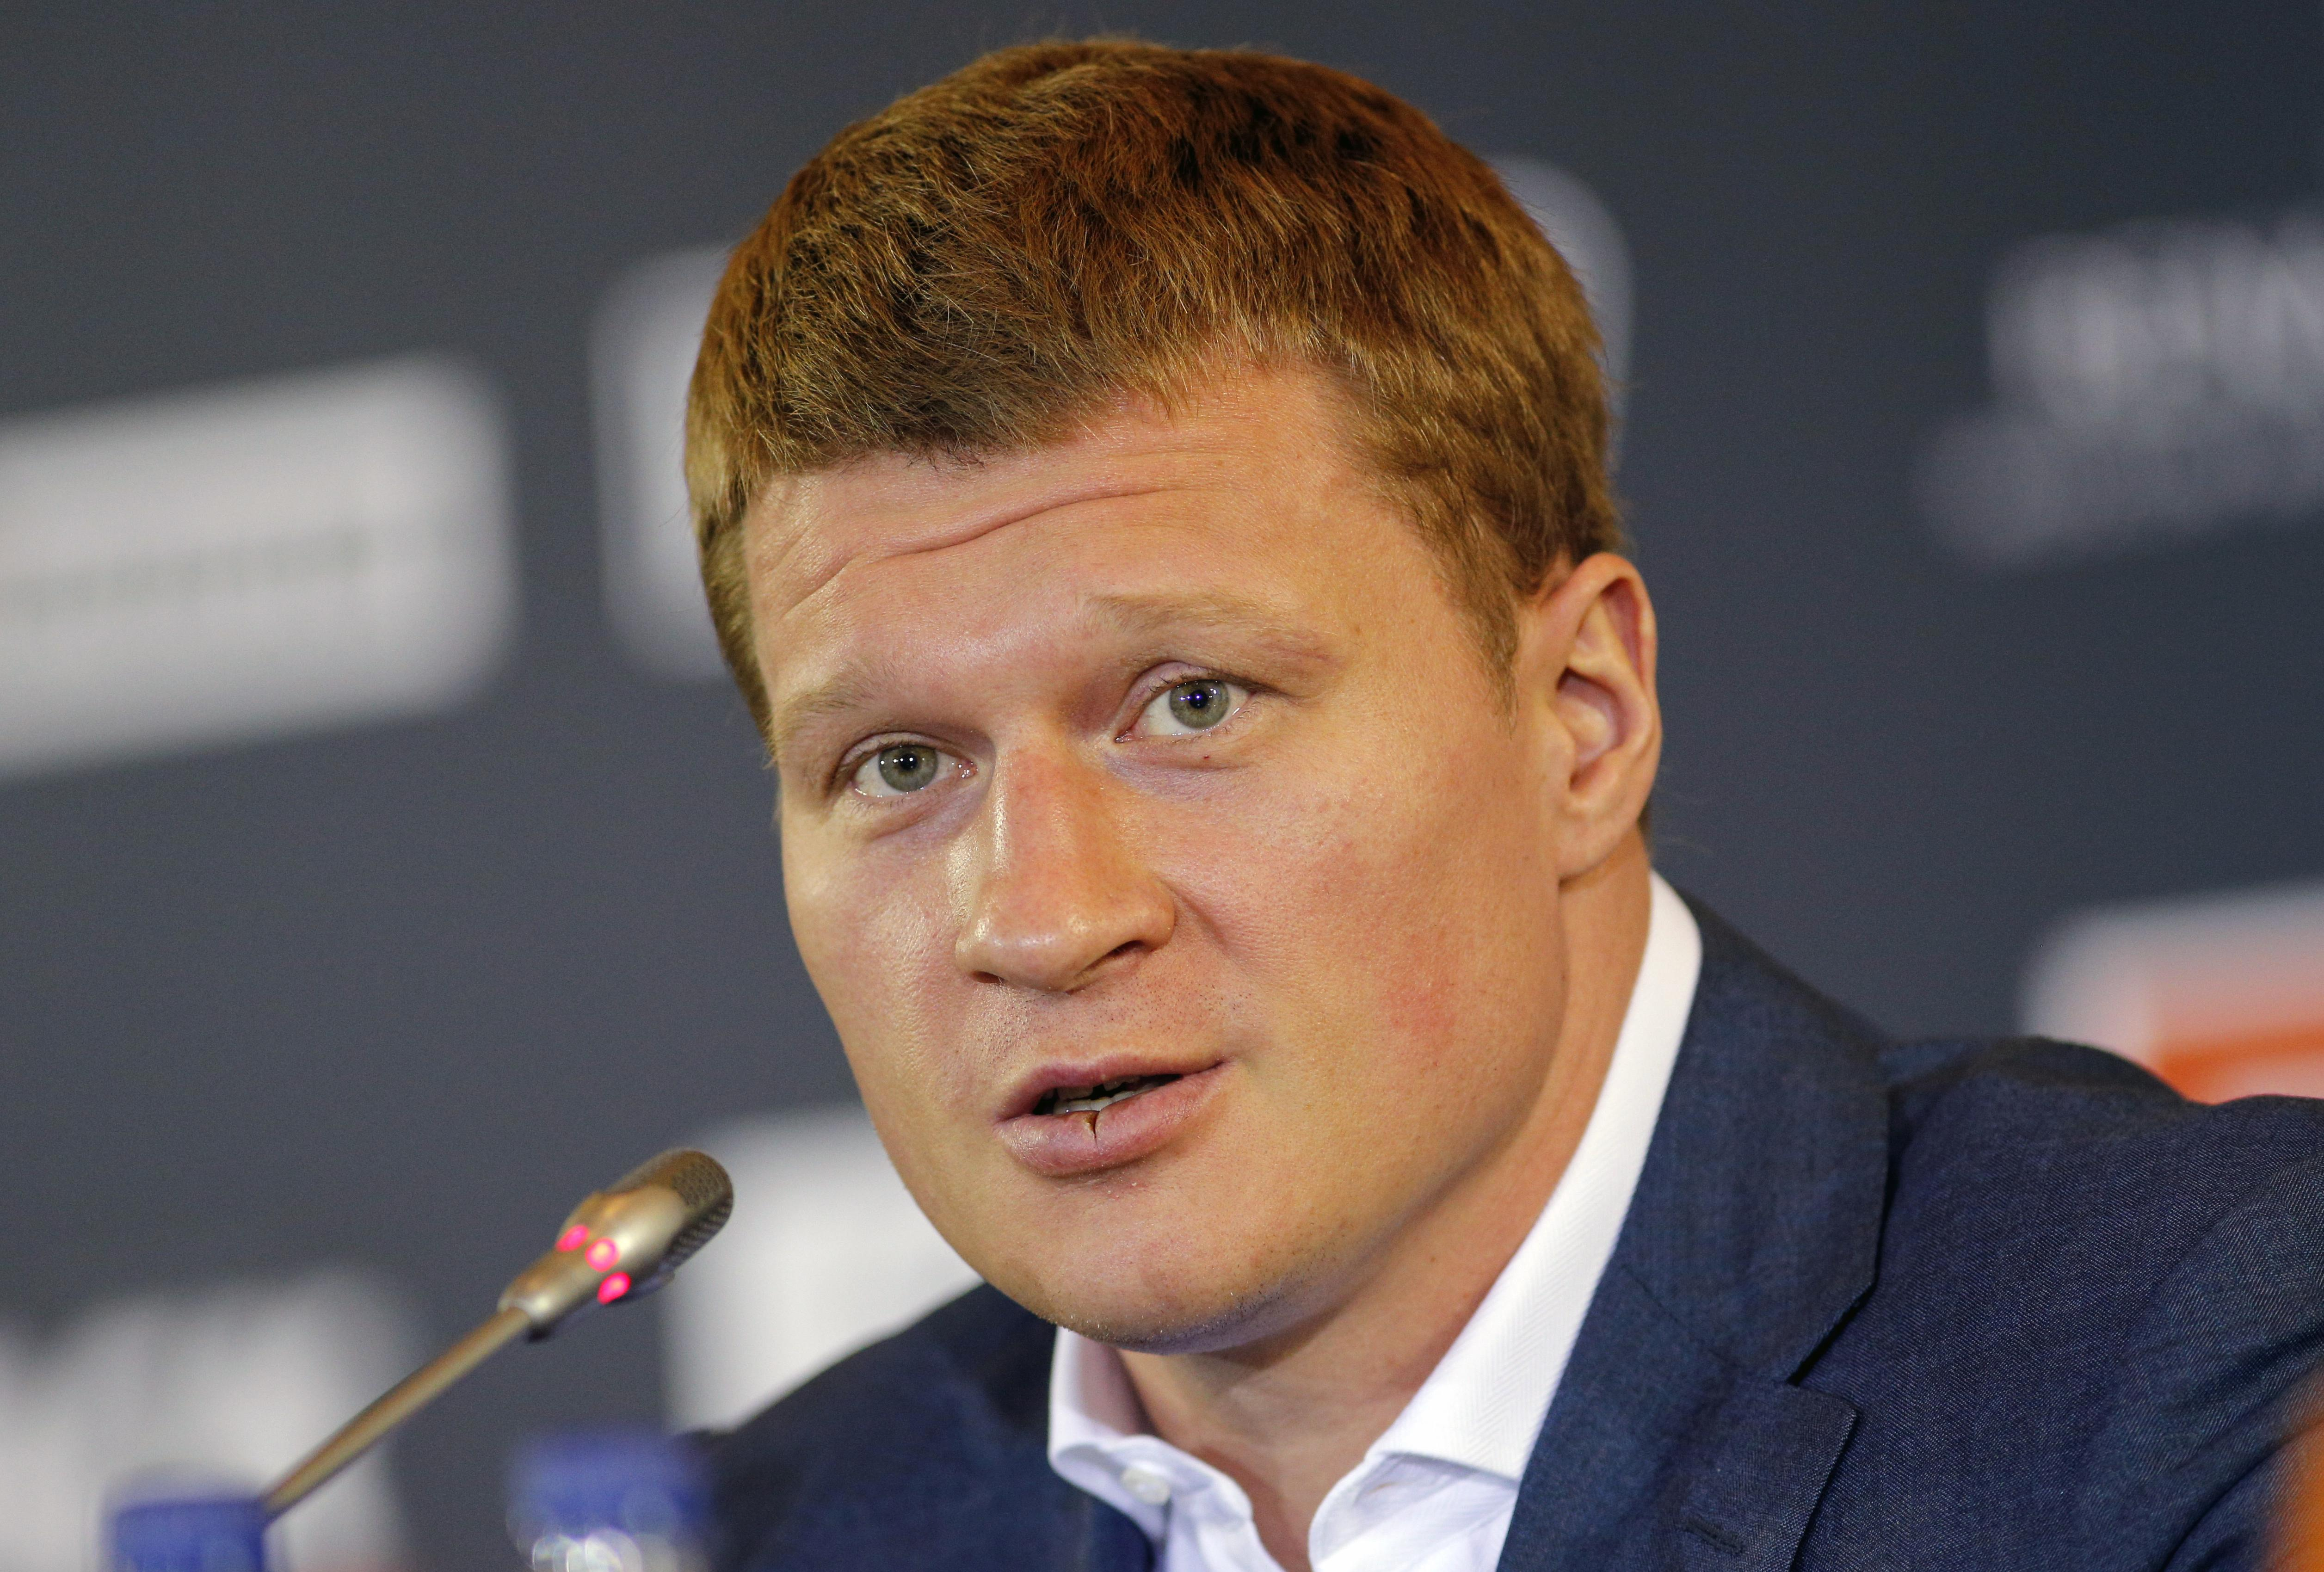 Alexander Povetkin is set to be Anthony Joshua's next opponent with the WBA title on the line